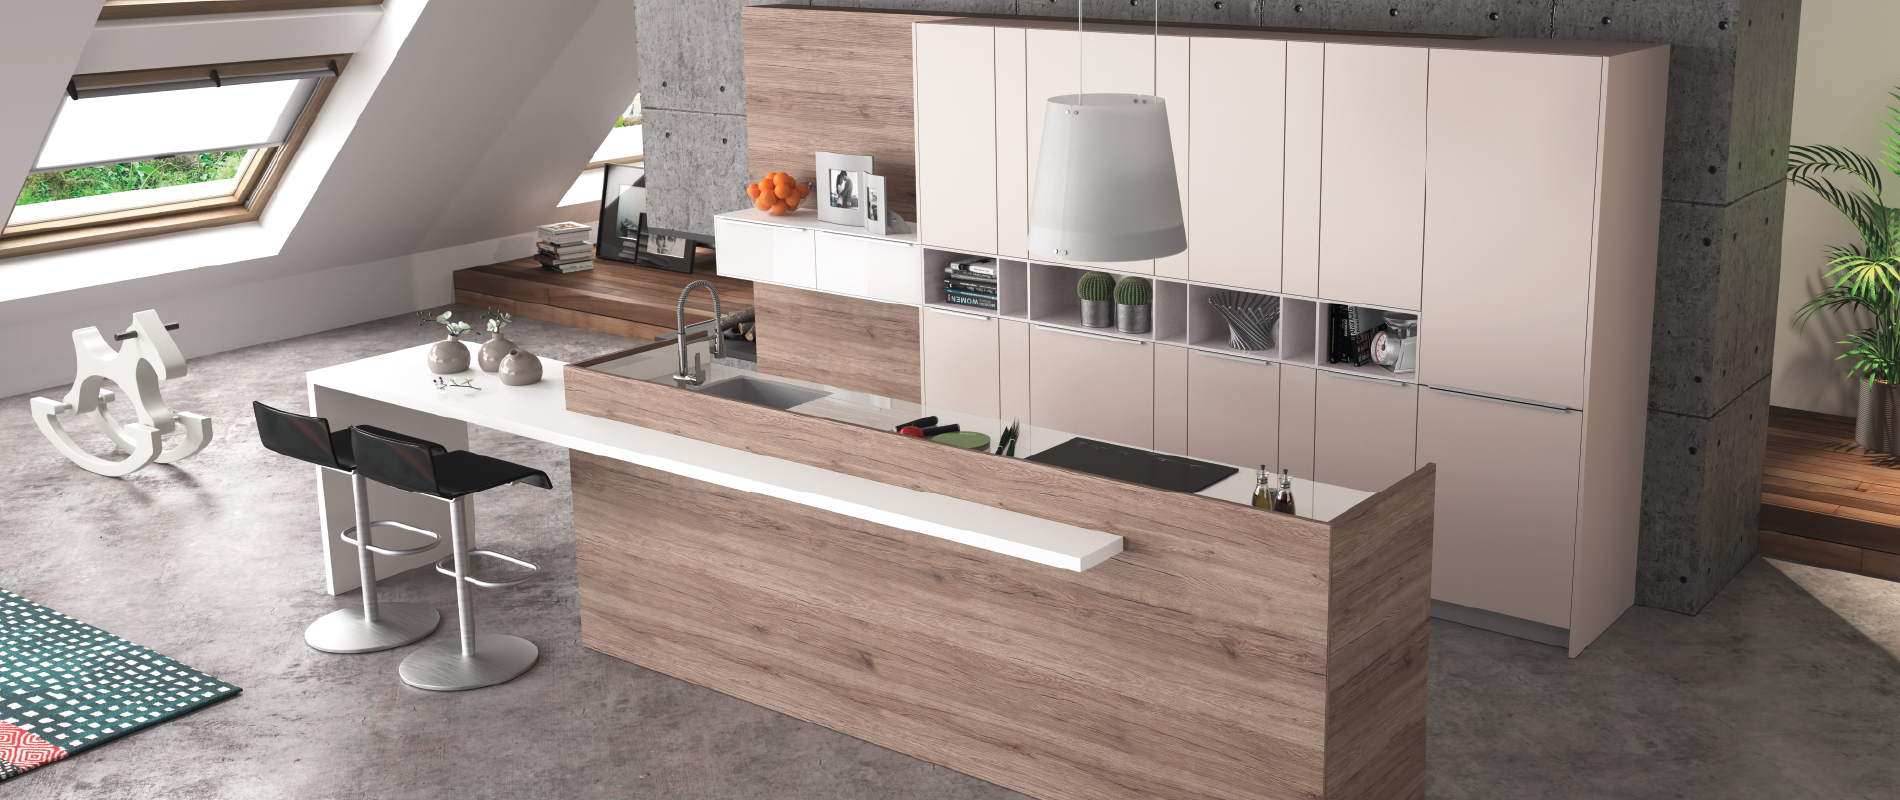 Cuisine contemporaine zaho alicante d cor bois haut de for Cuisines contemporaines design